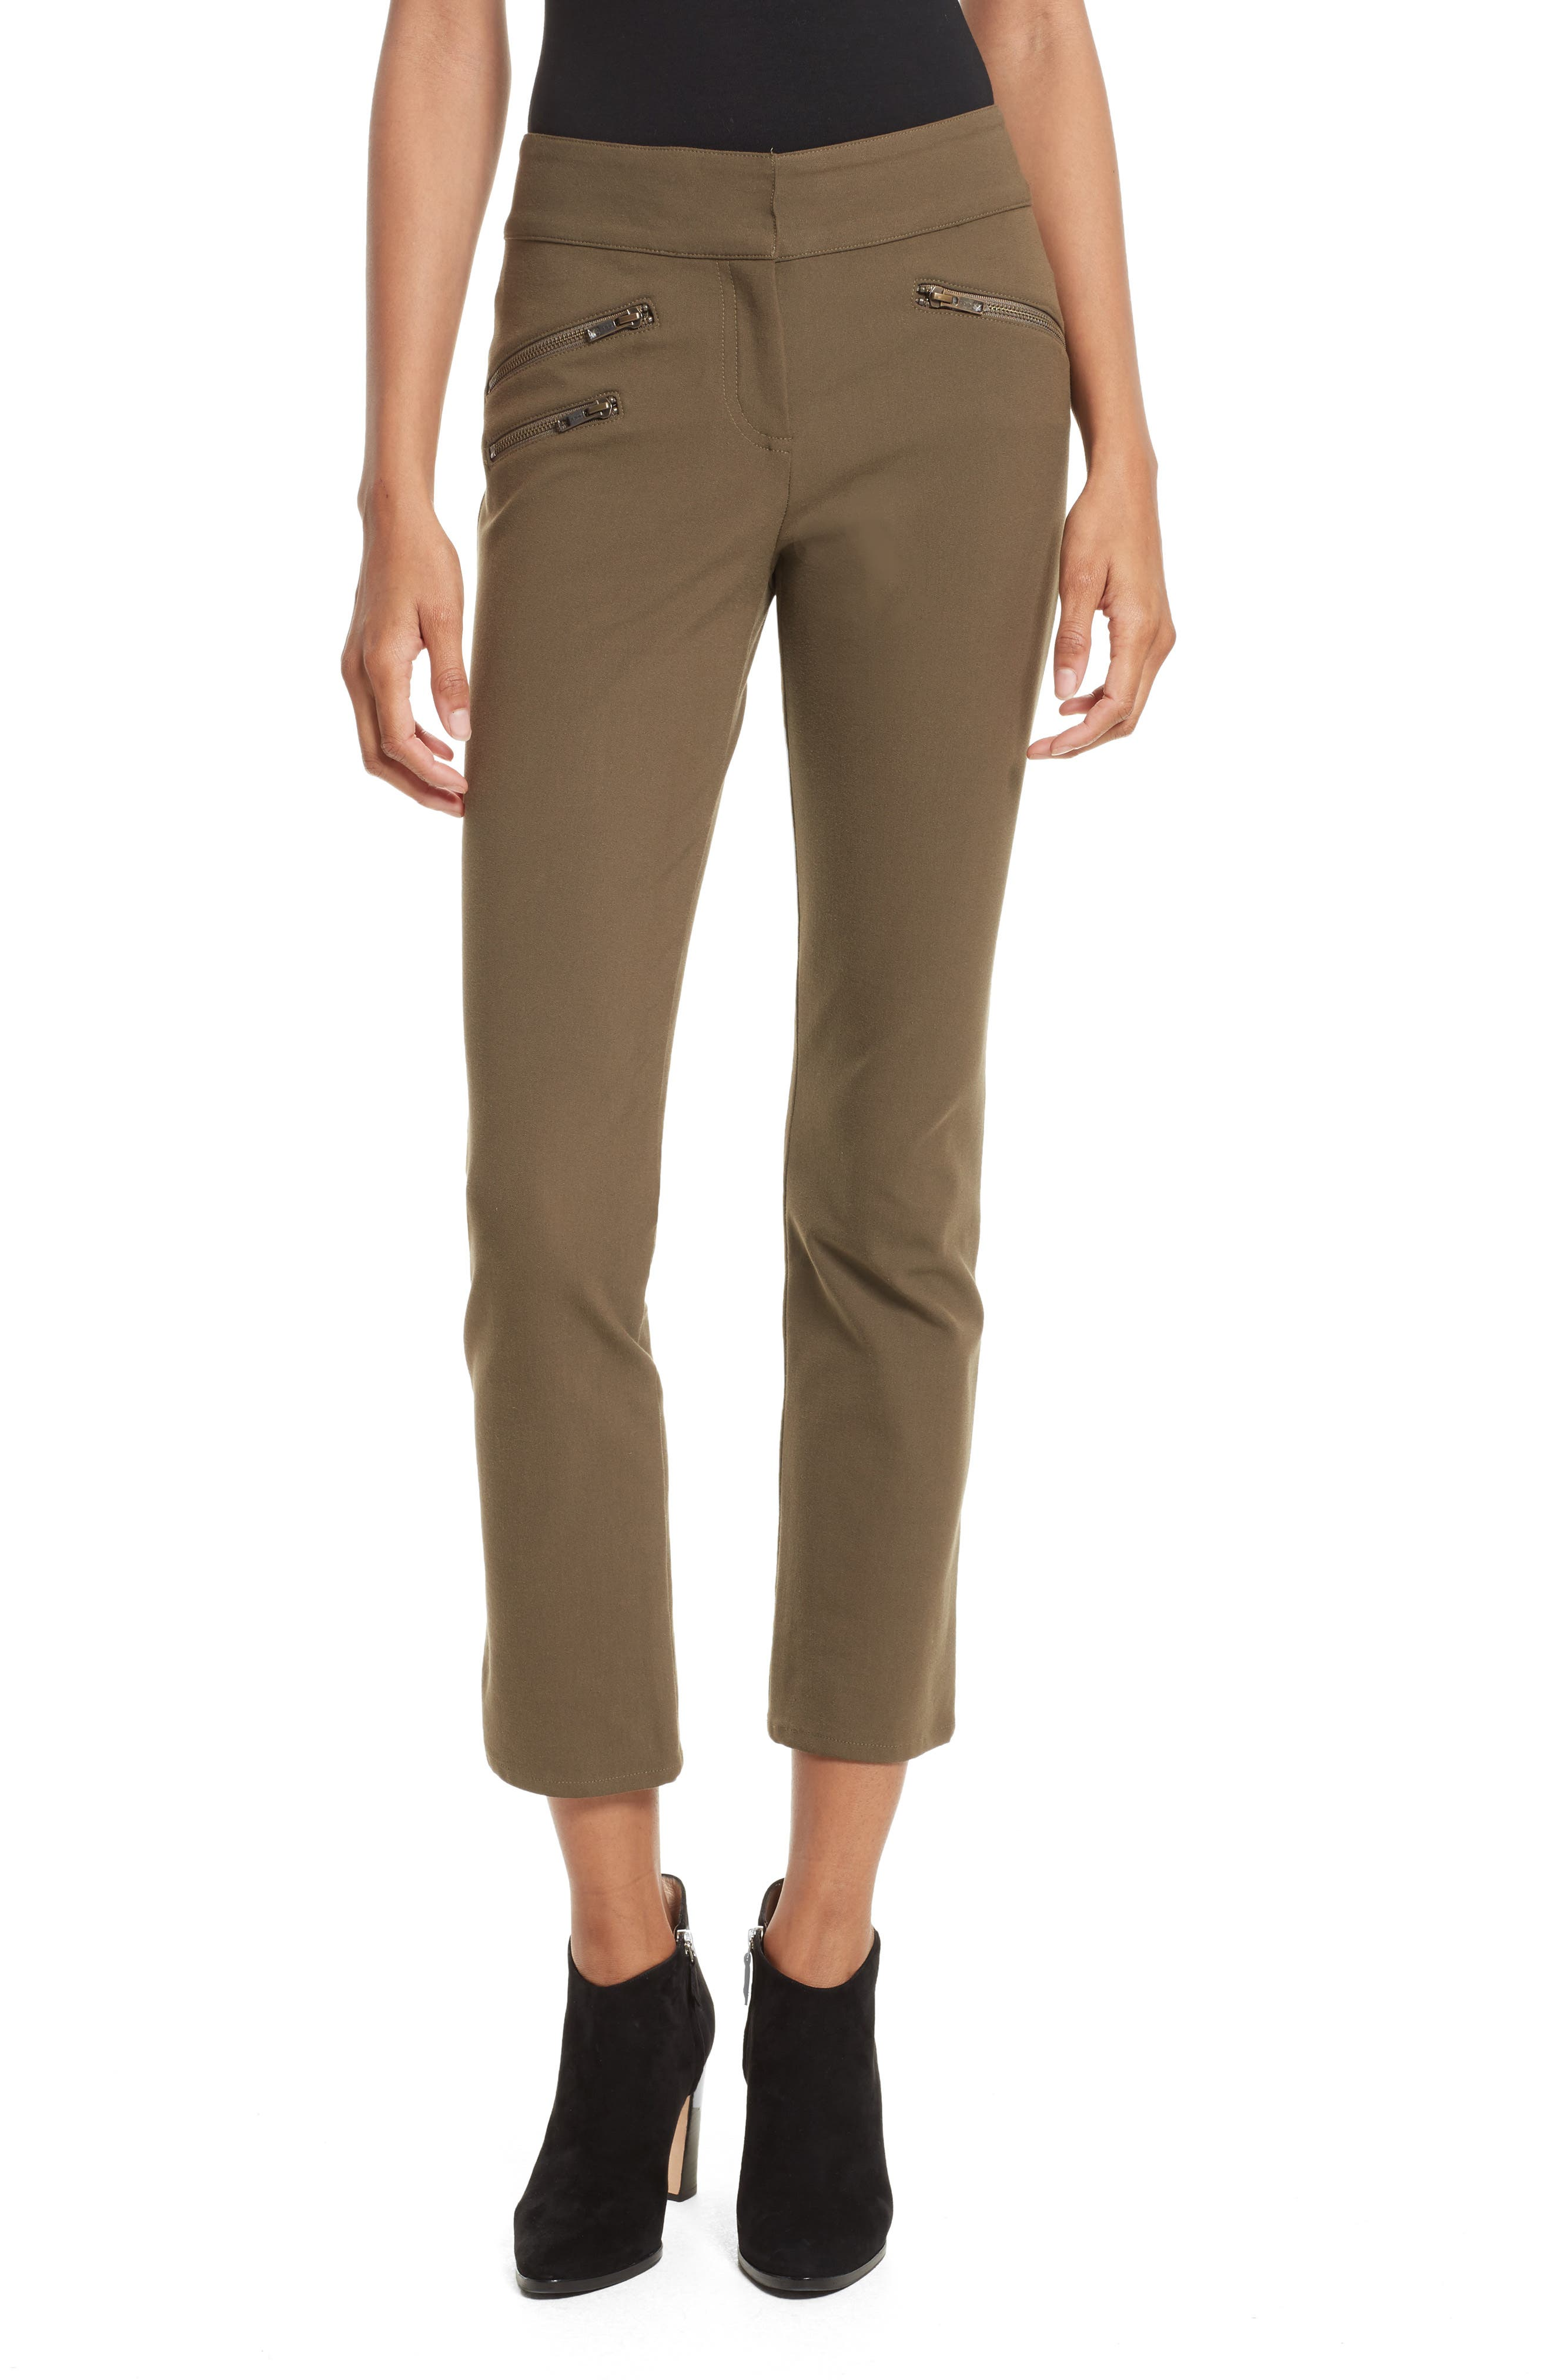 Adelaide Zipper Detail Crop Pants,                         Main,                         color, Army Green